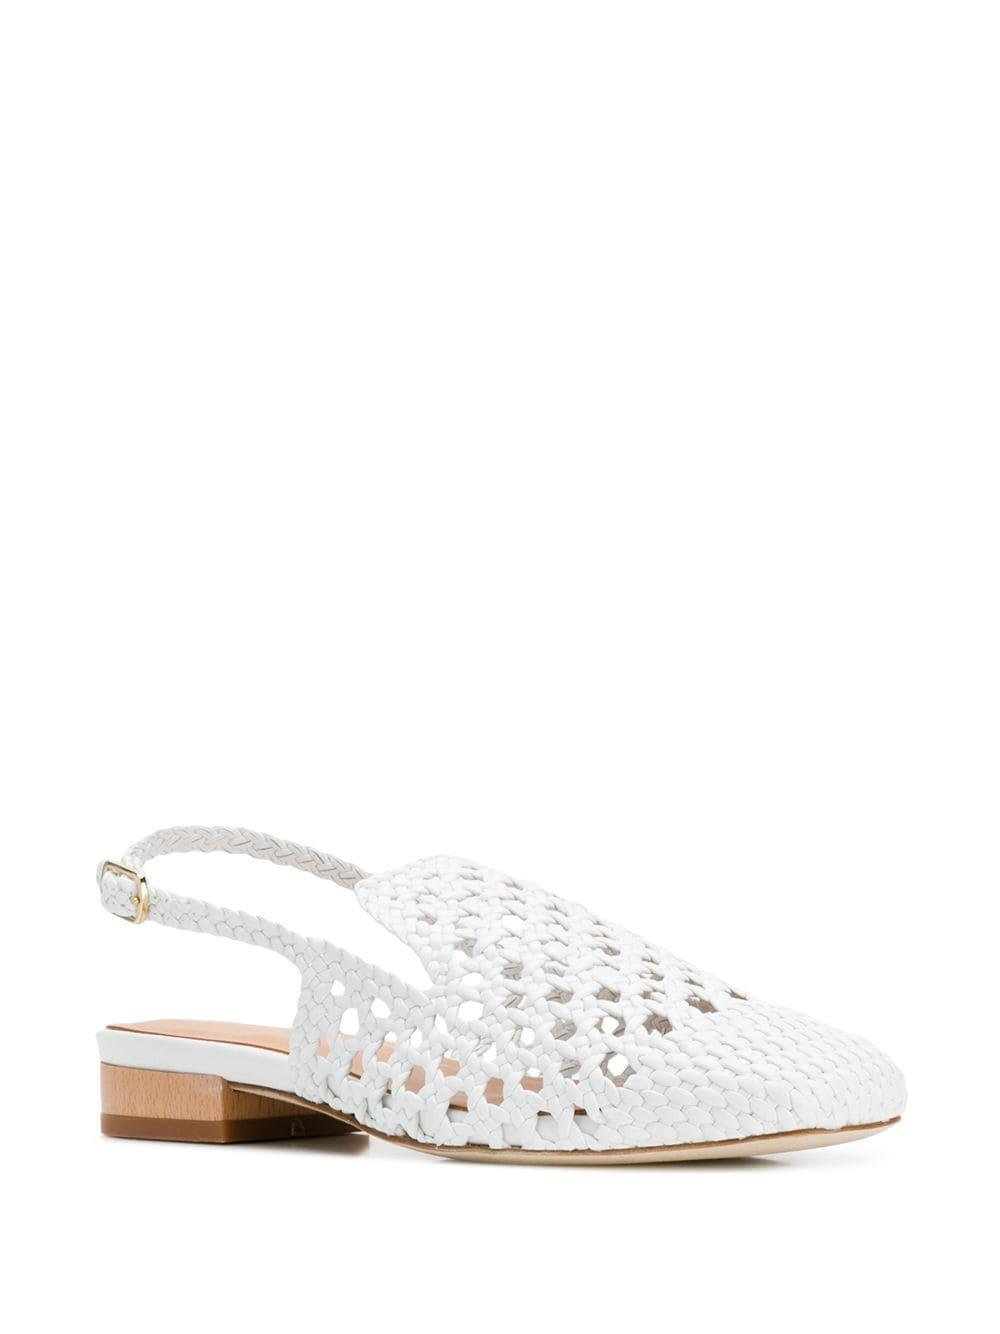 22b6c4dcdb6 Lyst - Paloma Barceló Alois Loafers in White